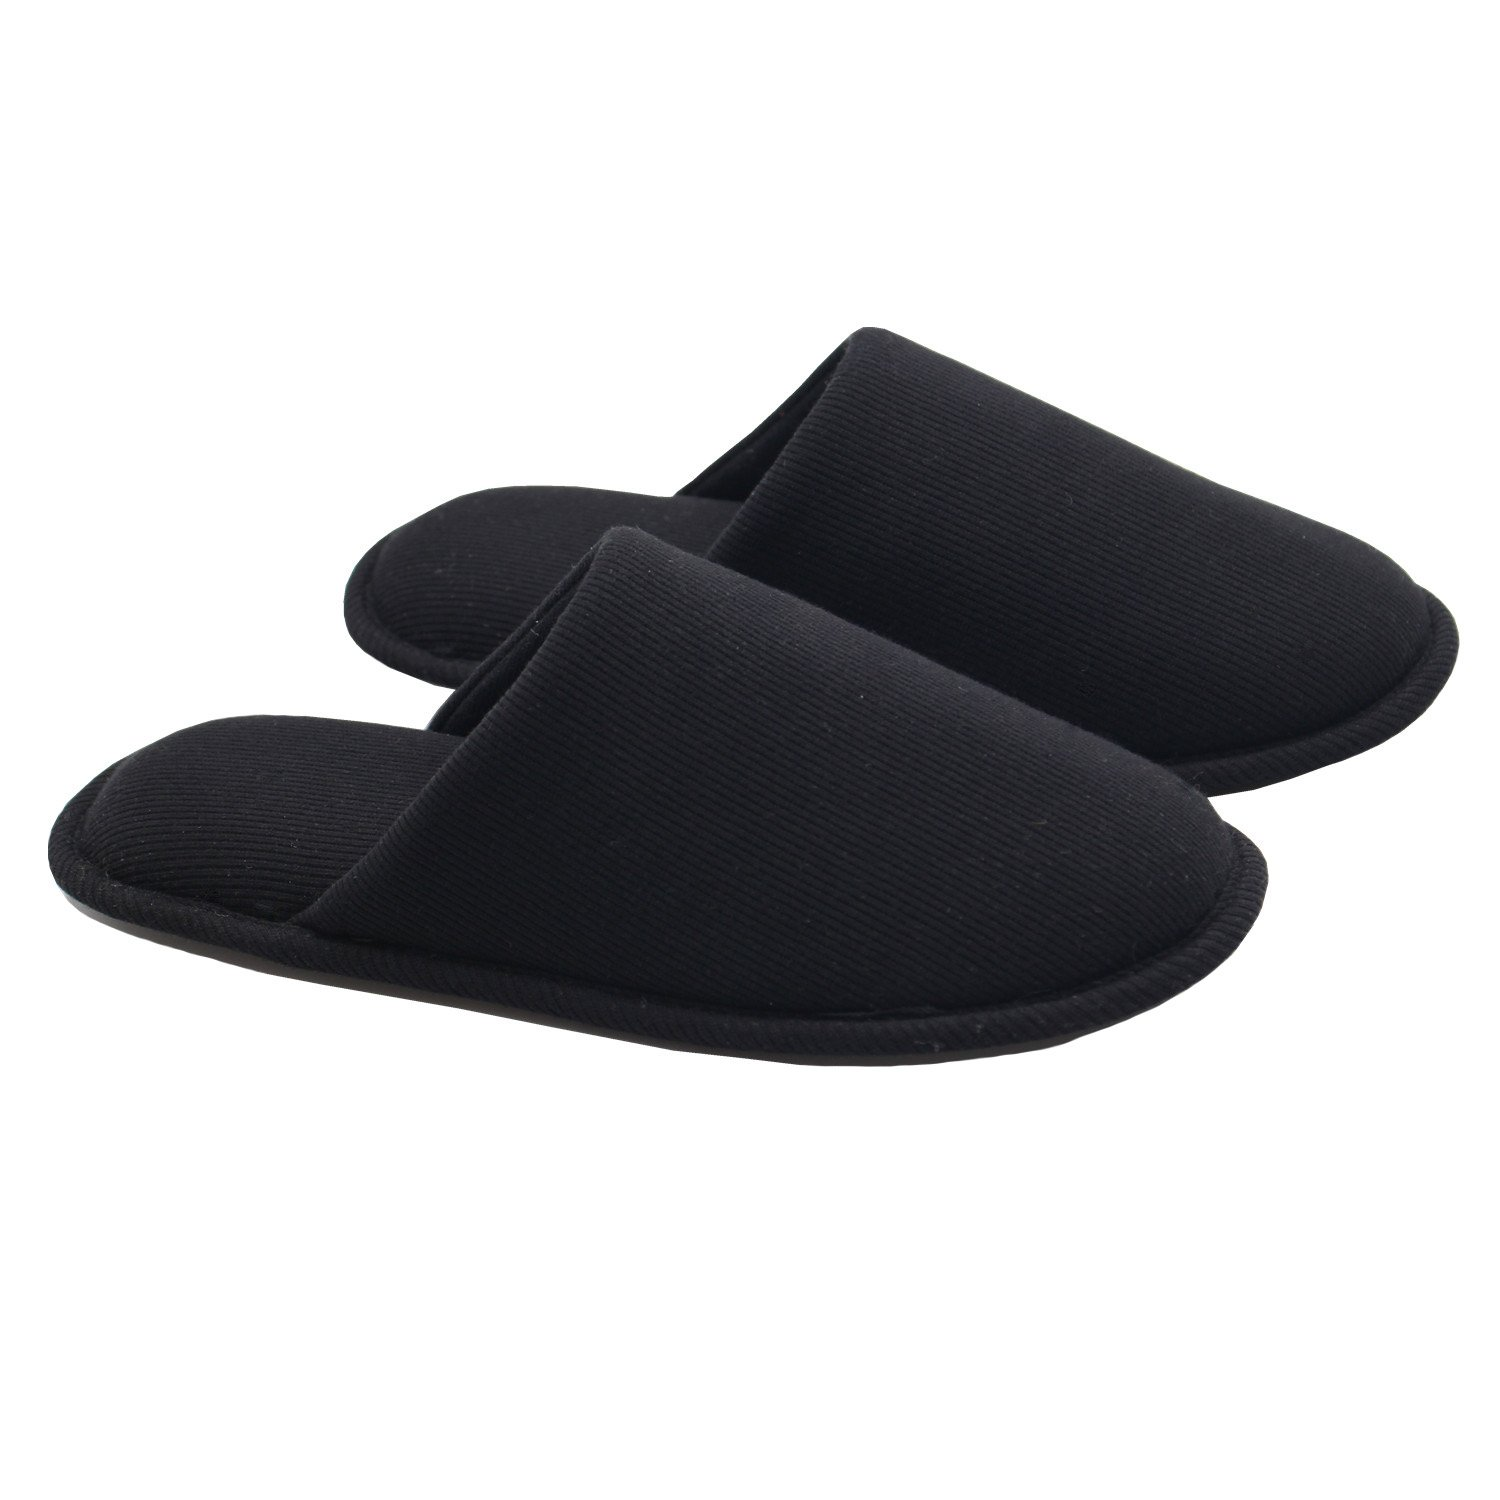 Ofoot Men's Cozy Thread Cloth Organic Cotton House Slippers, Washable Flat Indoor/Outdoor Slip On Shoes (X-Large/12-13 D(M) US, Black)